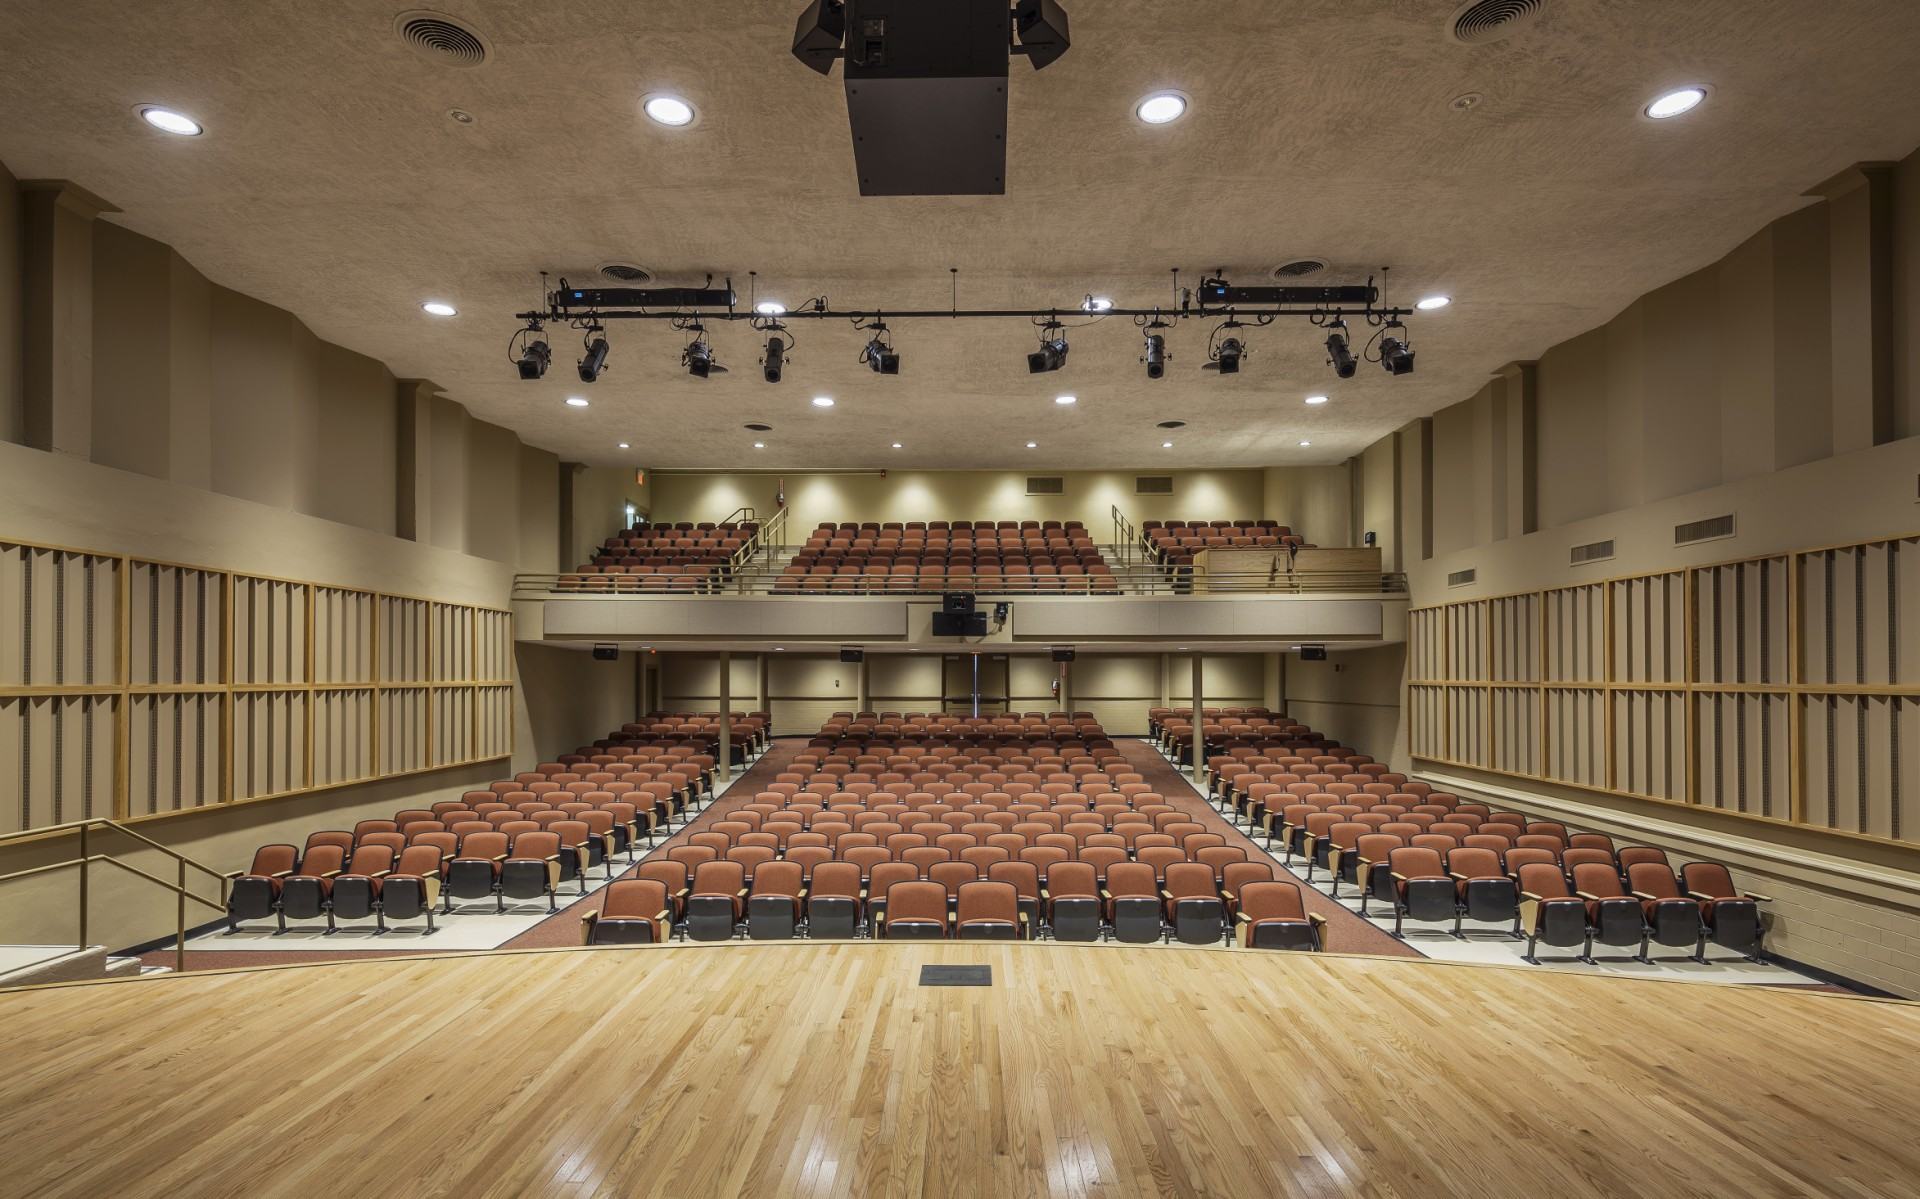 The Newport High School Auditorium is a busy, multipurpose space.